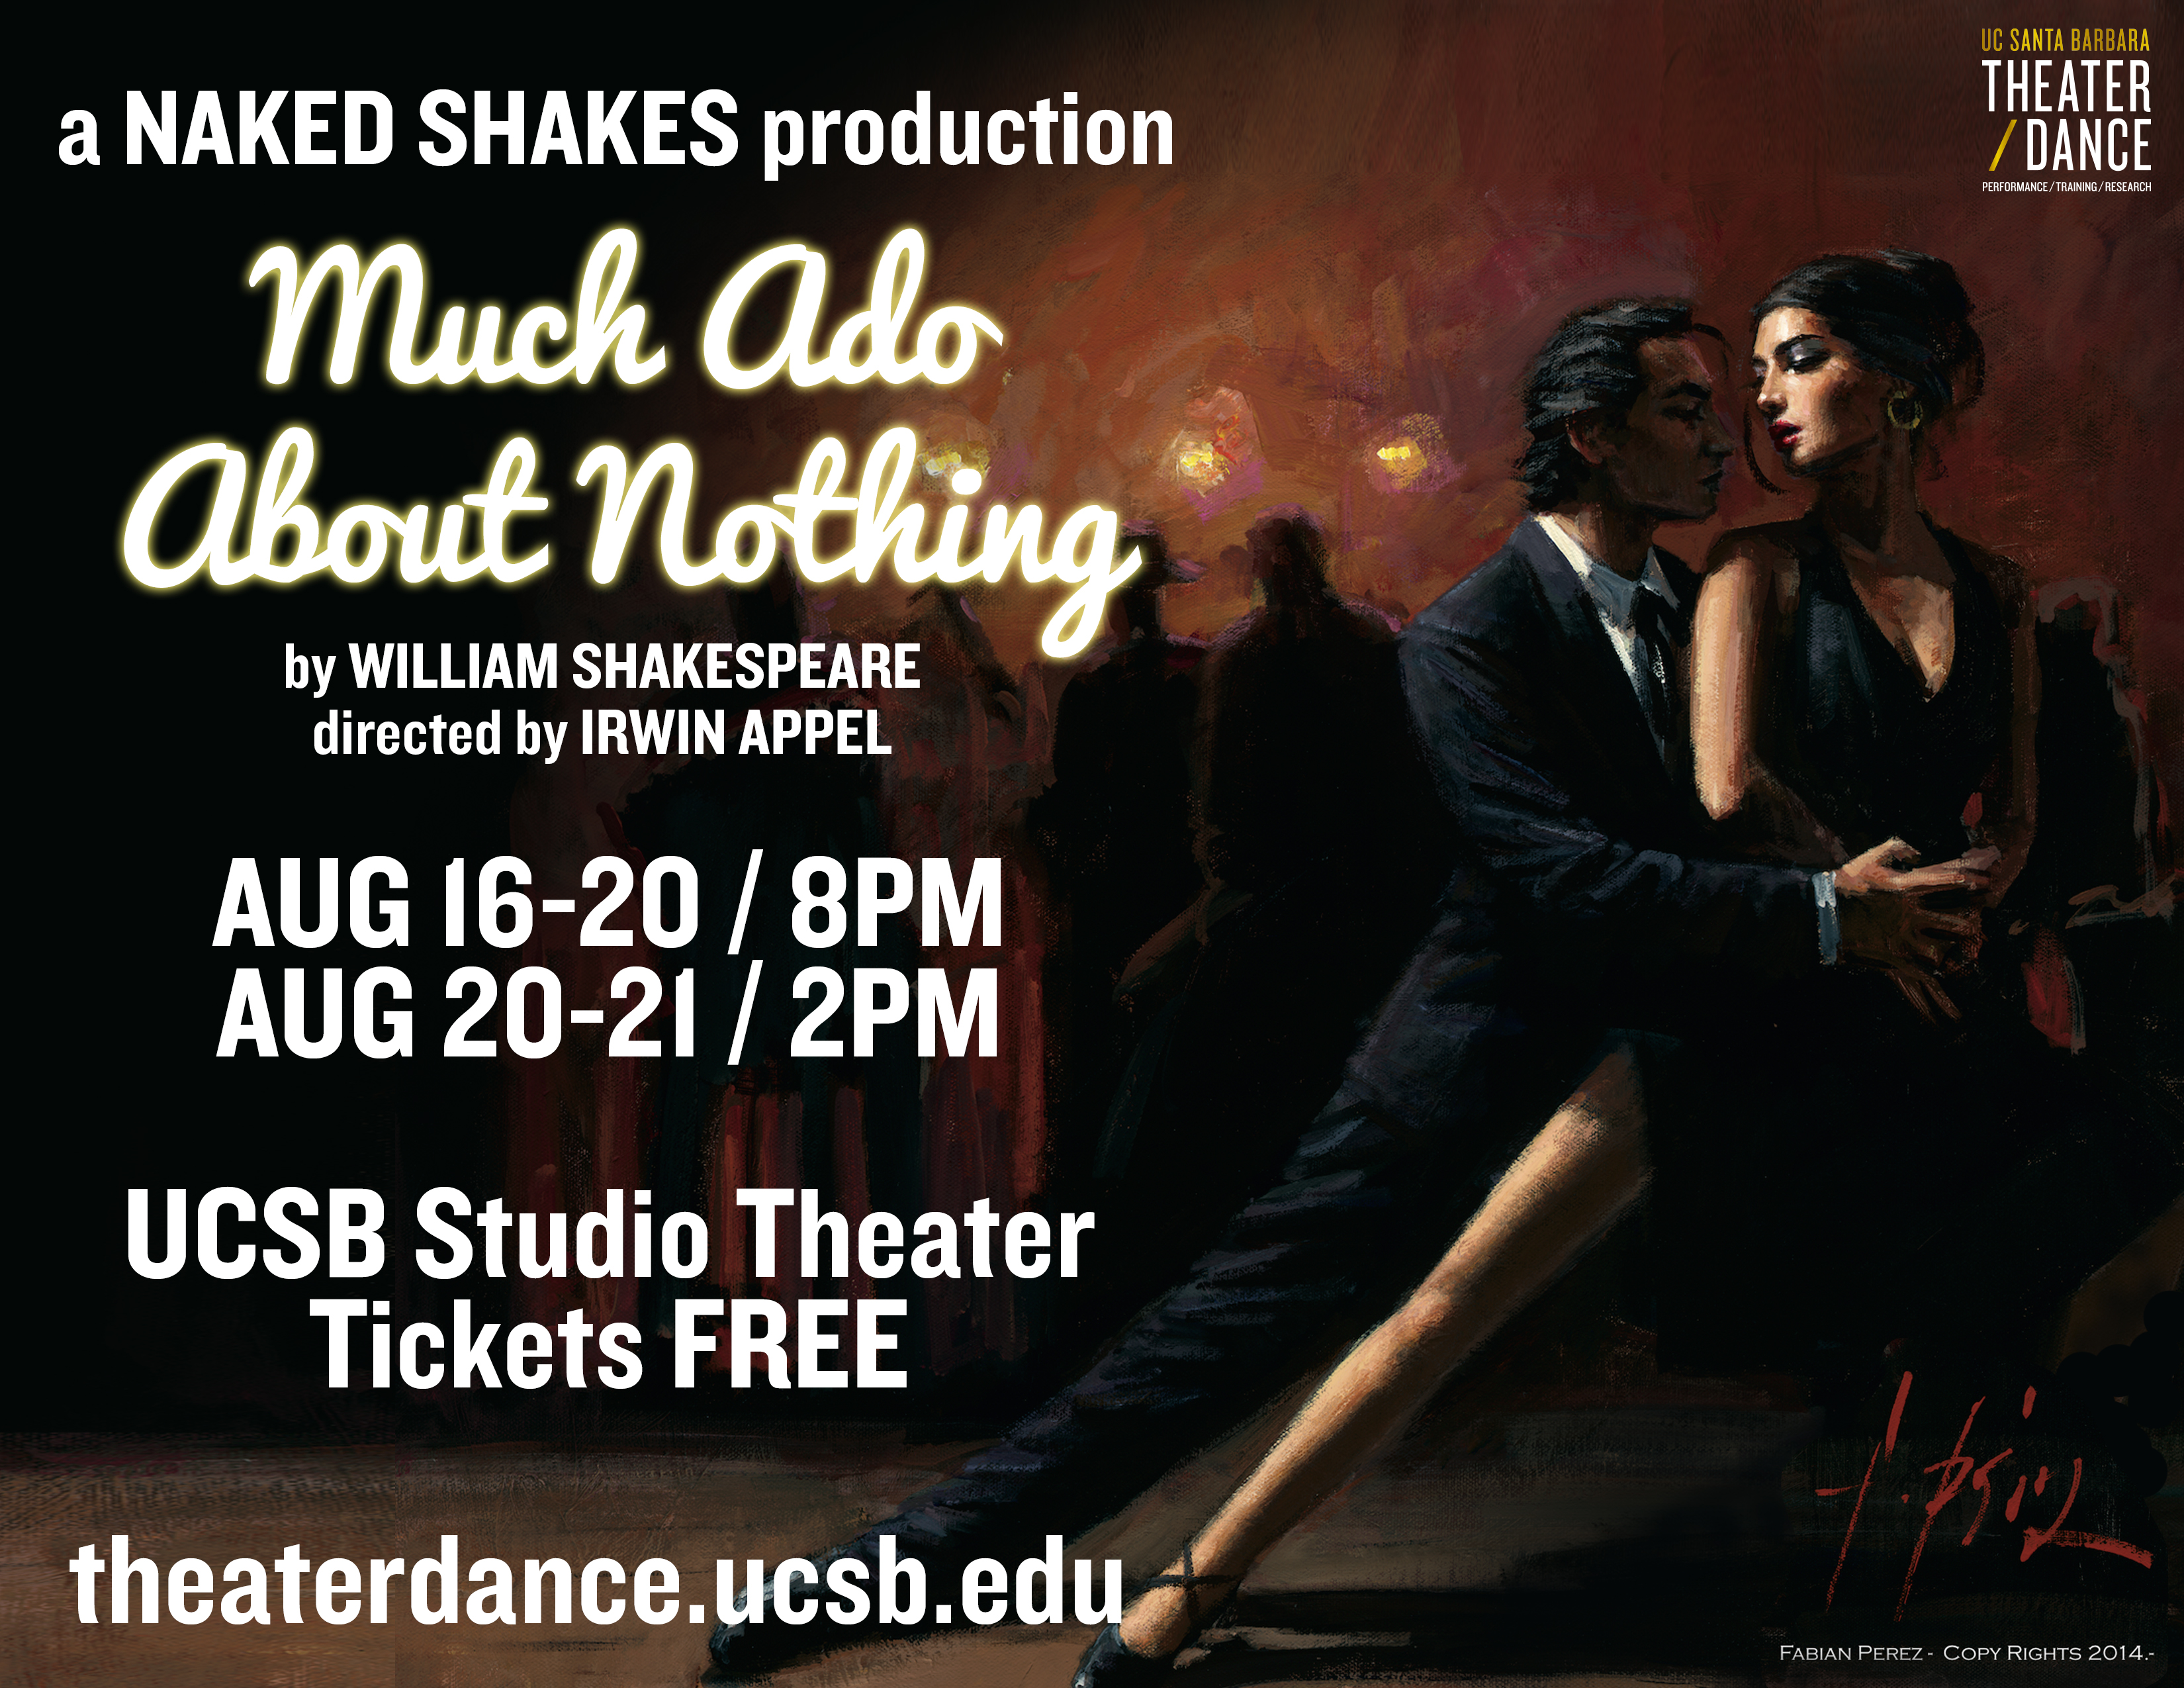 Naked Shakes Presents Stripped Down Version of Macbeth